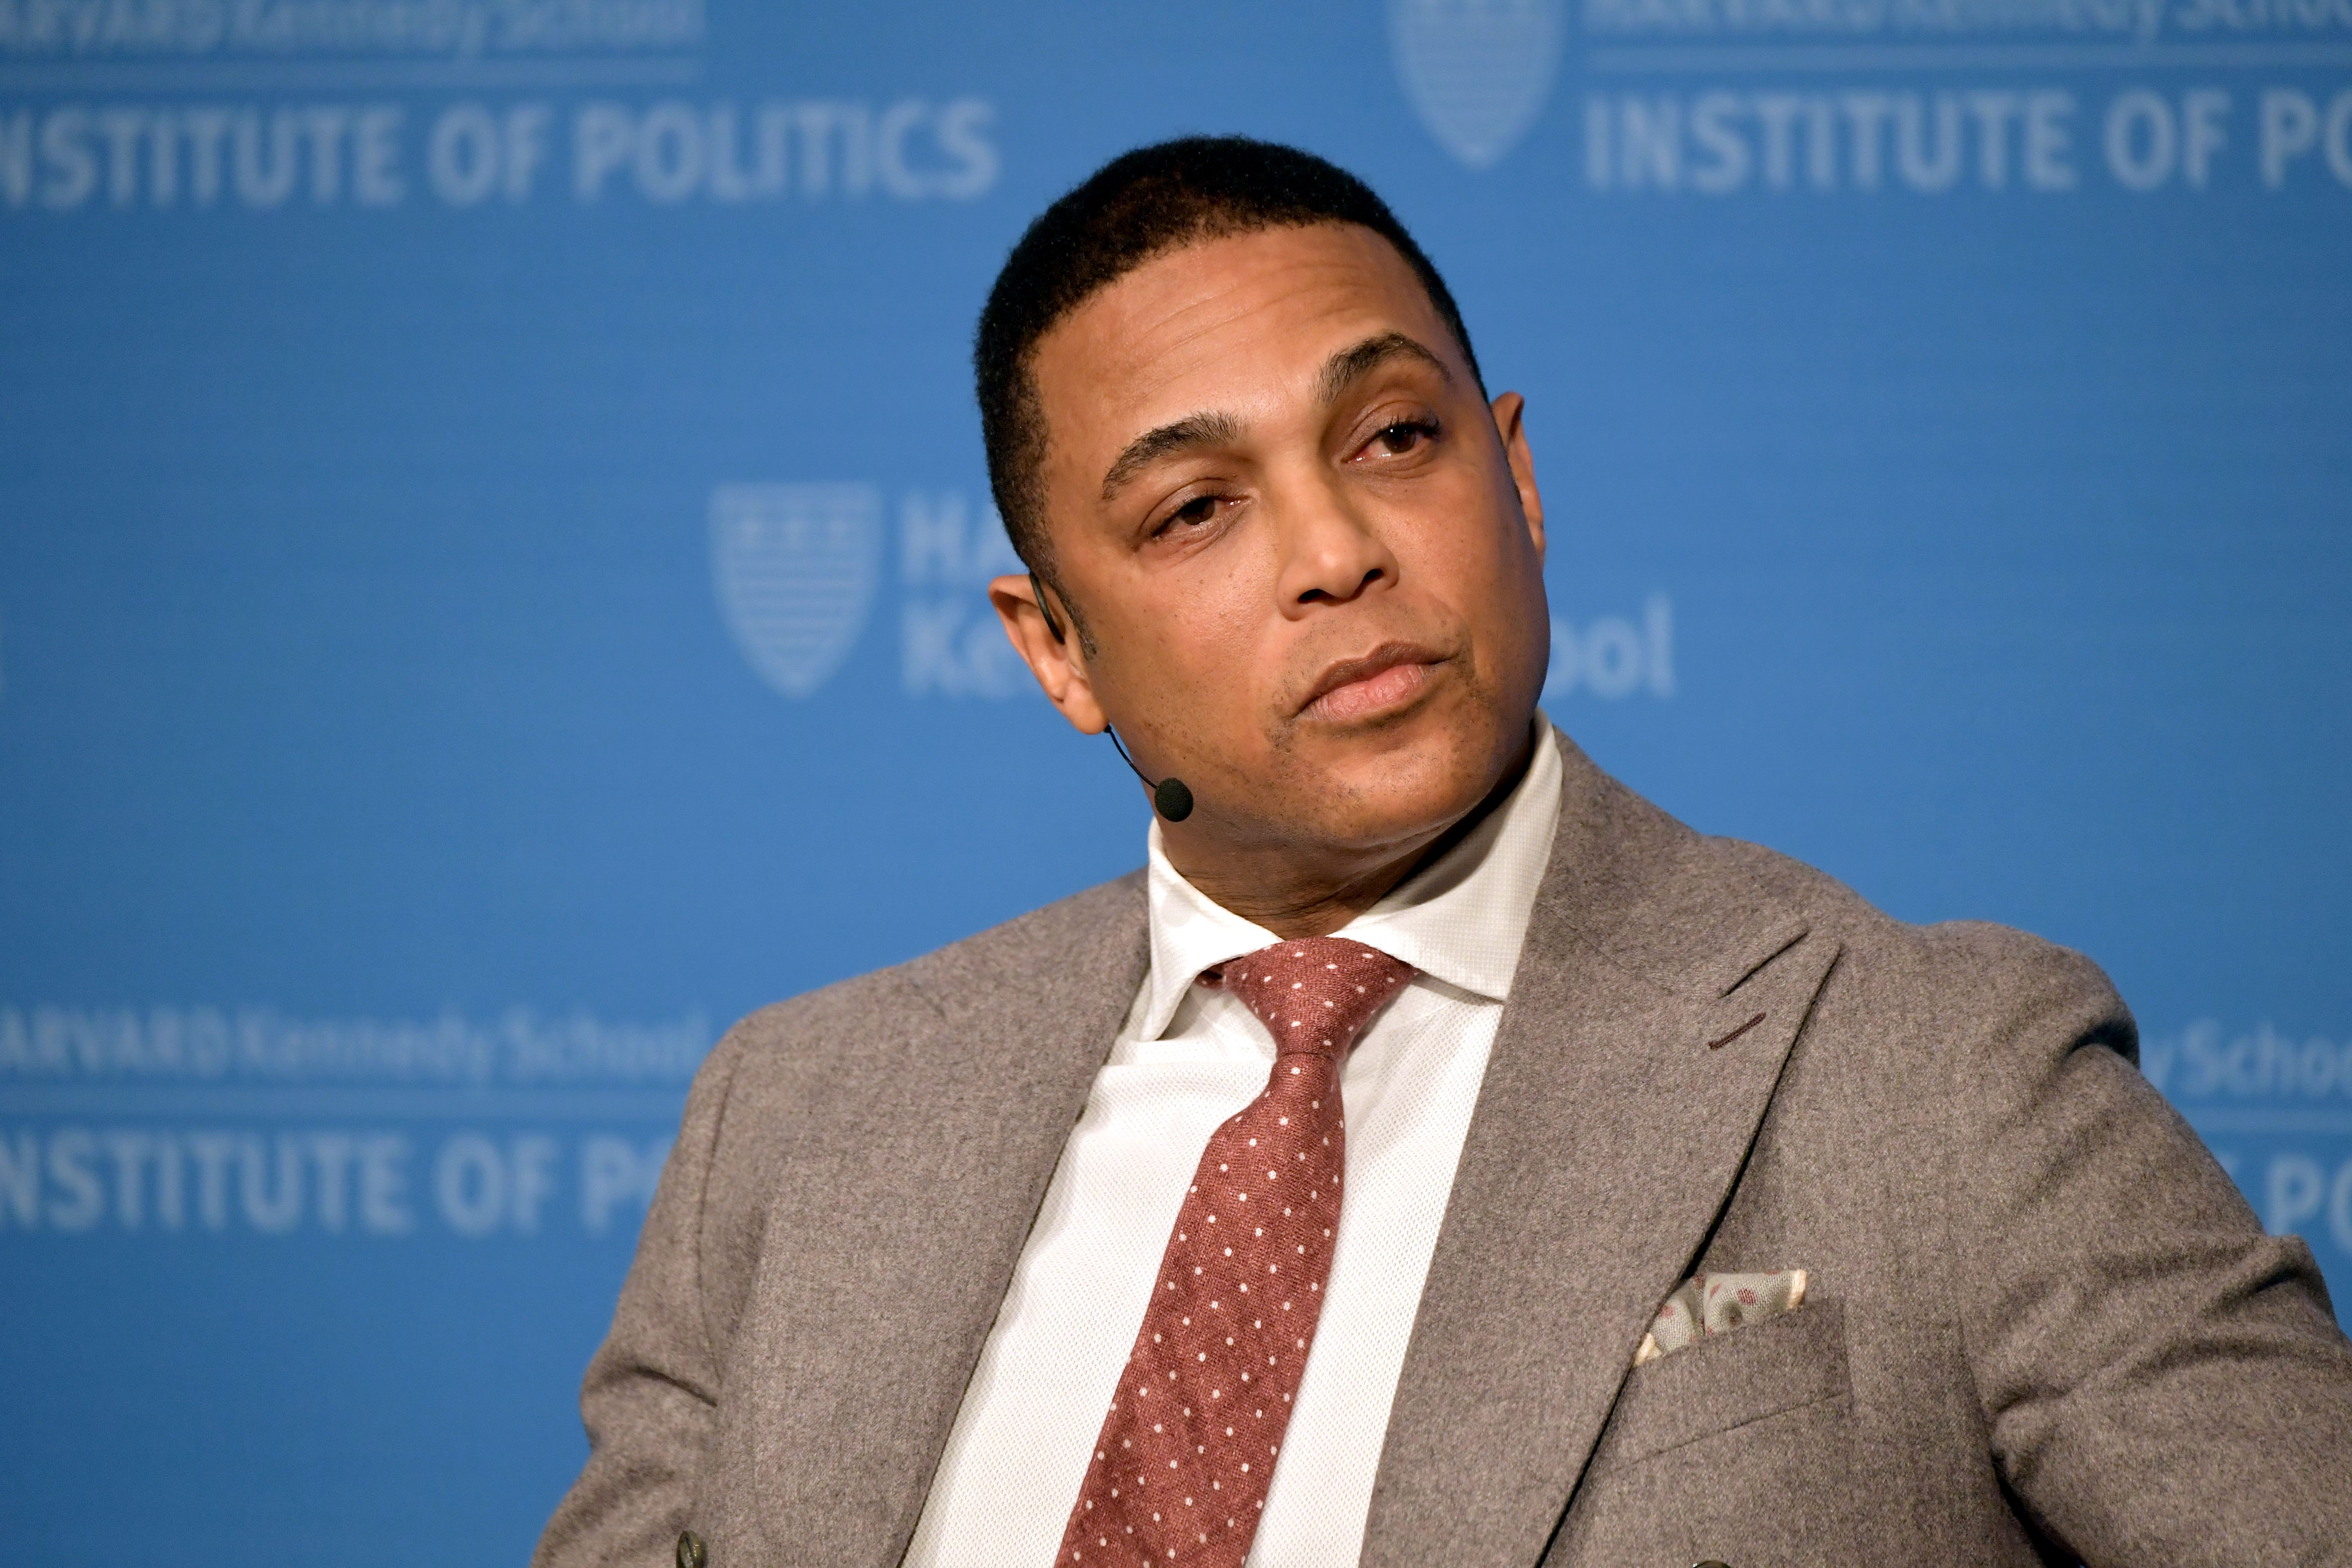 Don Lemon attends a speaking engagement at Harvard Kennedy School | Source: Getty Images